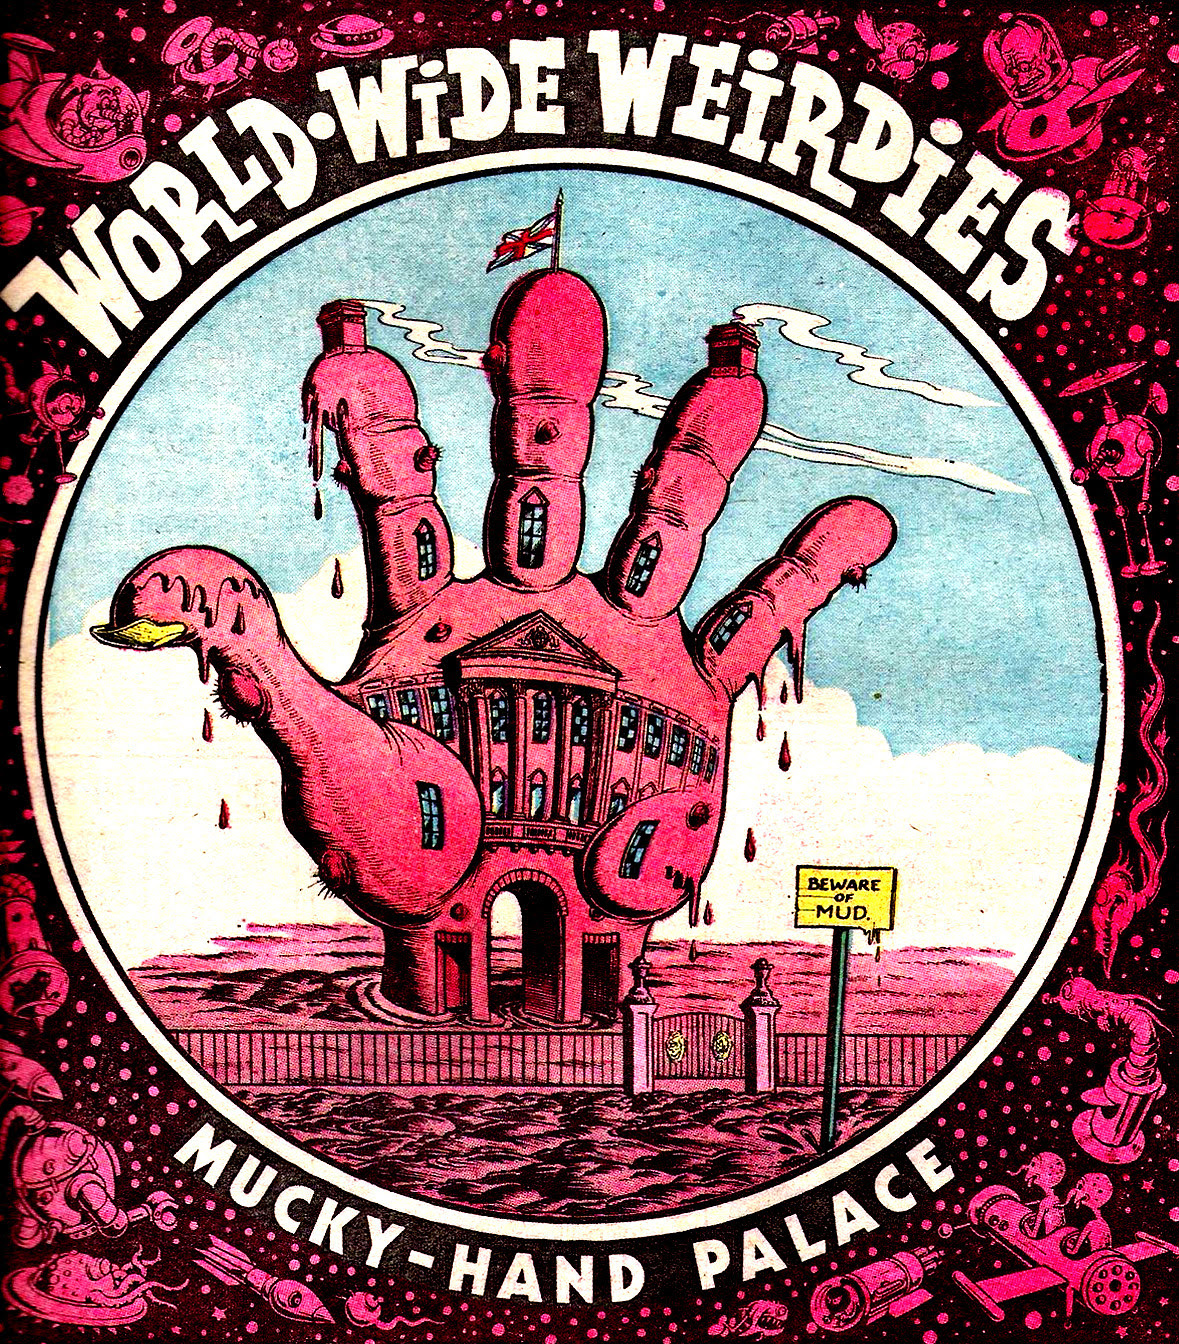 Ken Reid - World Wide Weirdies 73